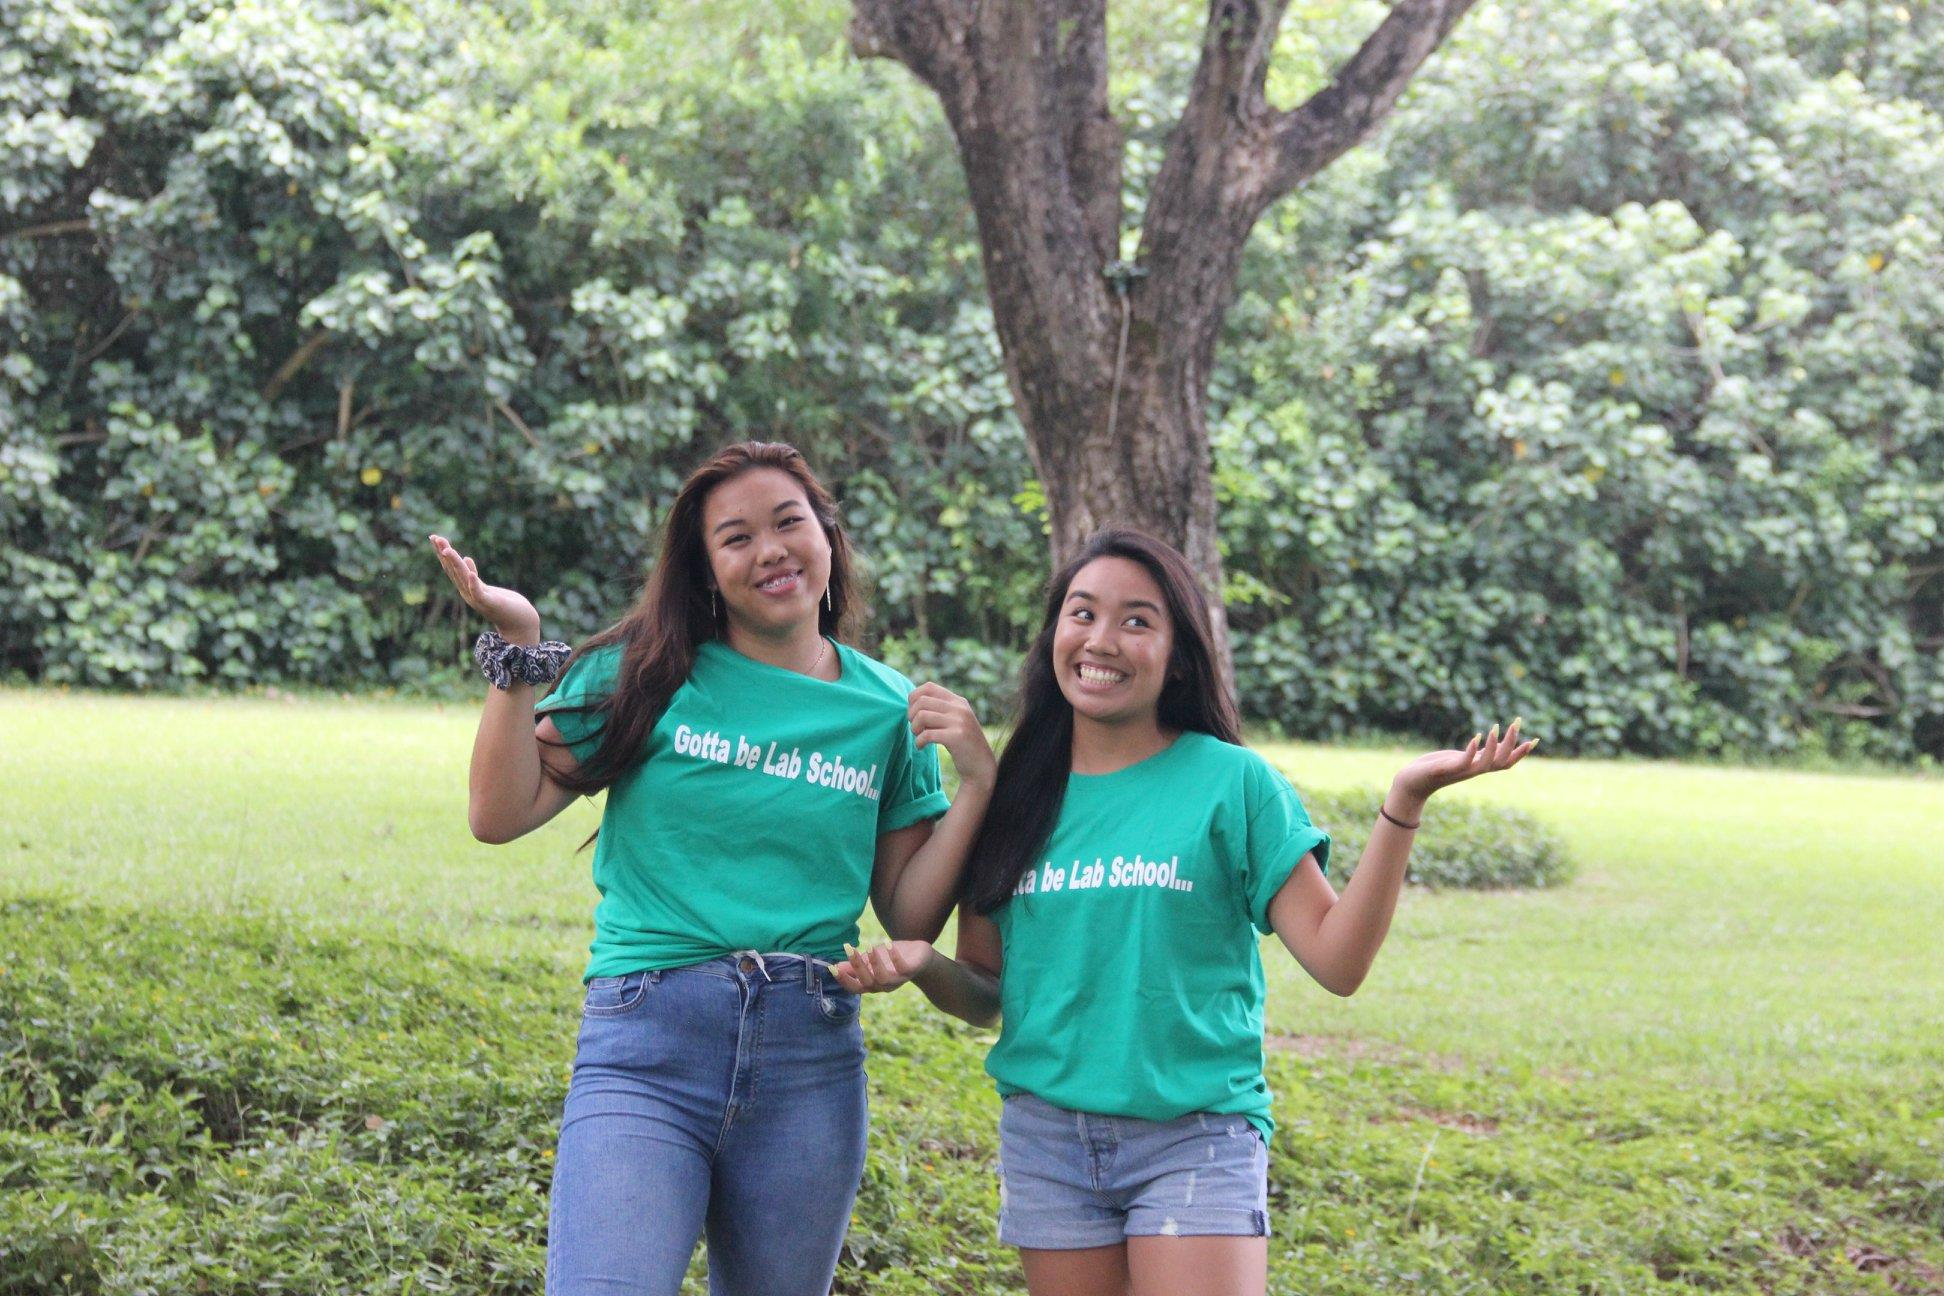 Photos of 2019 graduates Shania Lei Gabrillo and Brianna Tancinco wearing their Gotta be Lab School shirts courtesy of Jared Fuchigami '95.